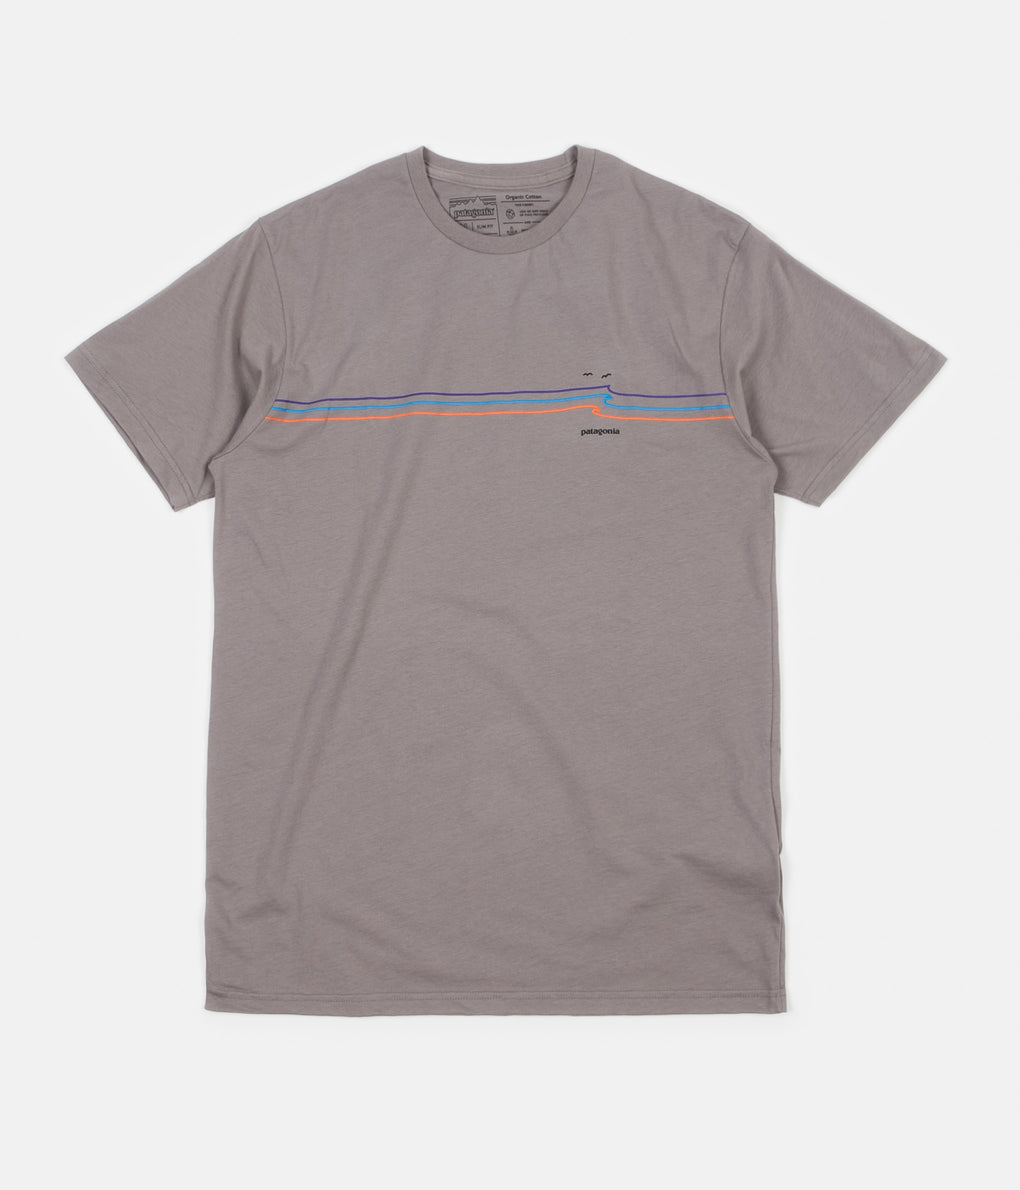 Patagonia Tide Ride Organic T-Shirt - Feather Grey